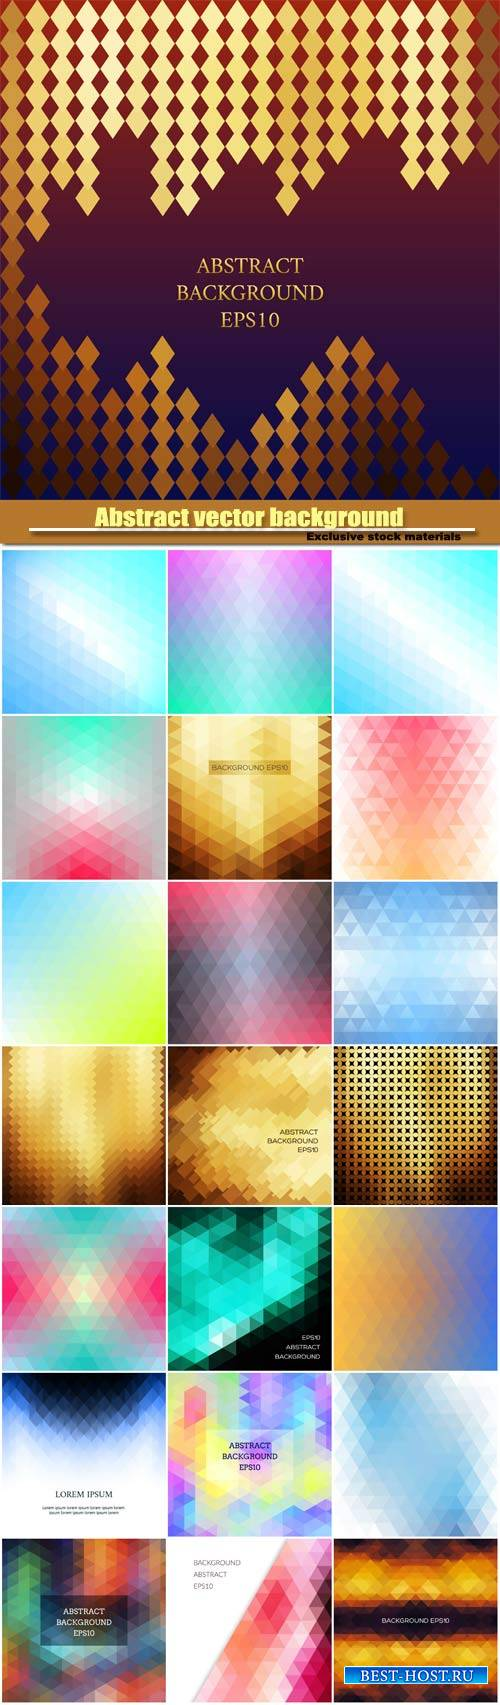 Abstract vector background in isometric style, geometric pattern